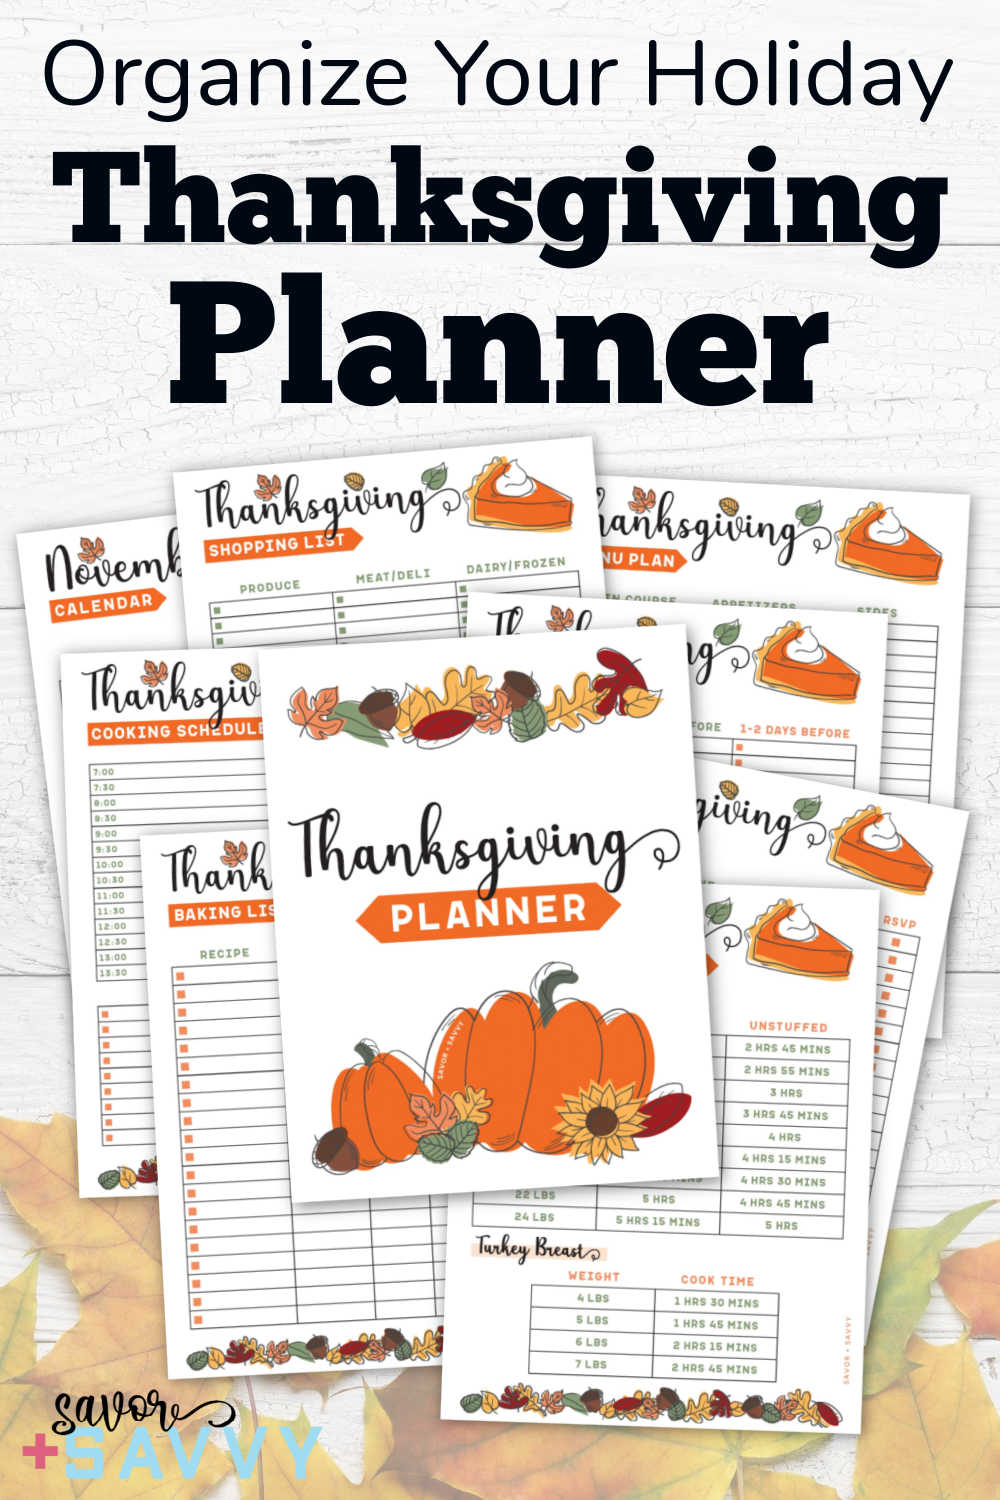 10 Secrets to Make Thanksgiving Stress Free {Printable Planner}